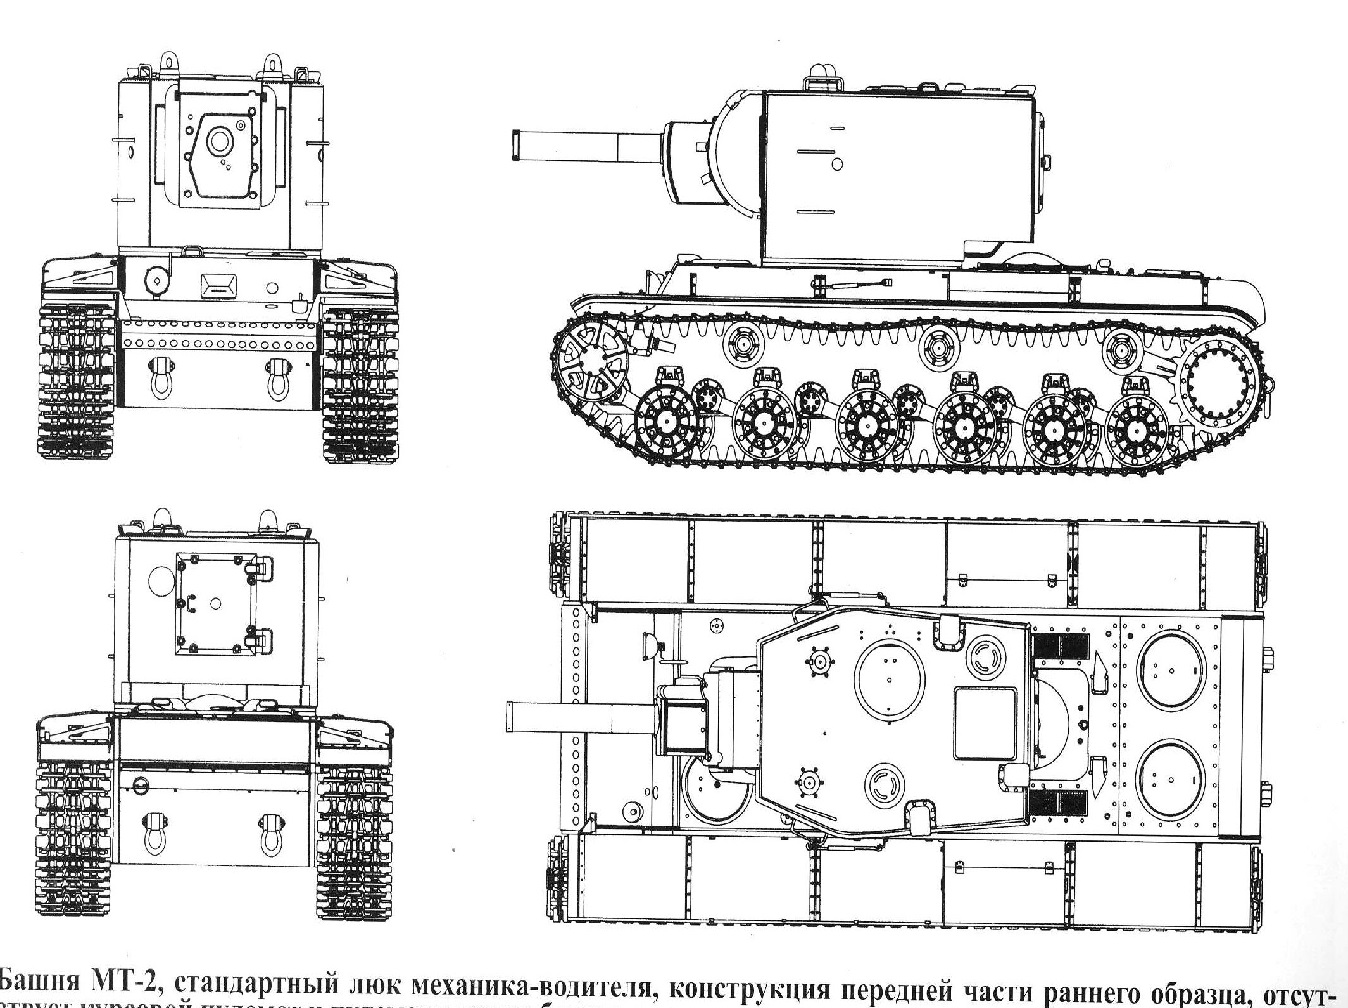 Kv 2 Soviet Heavy Assault Tank